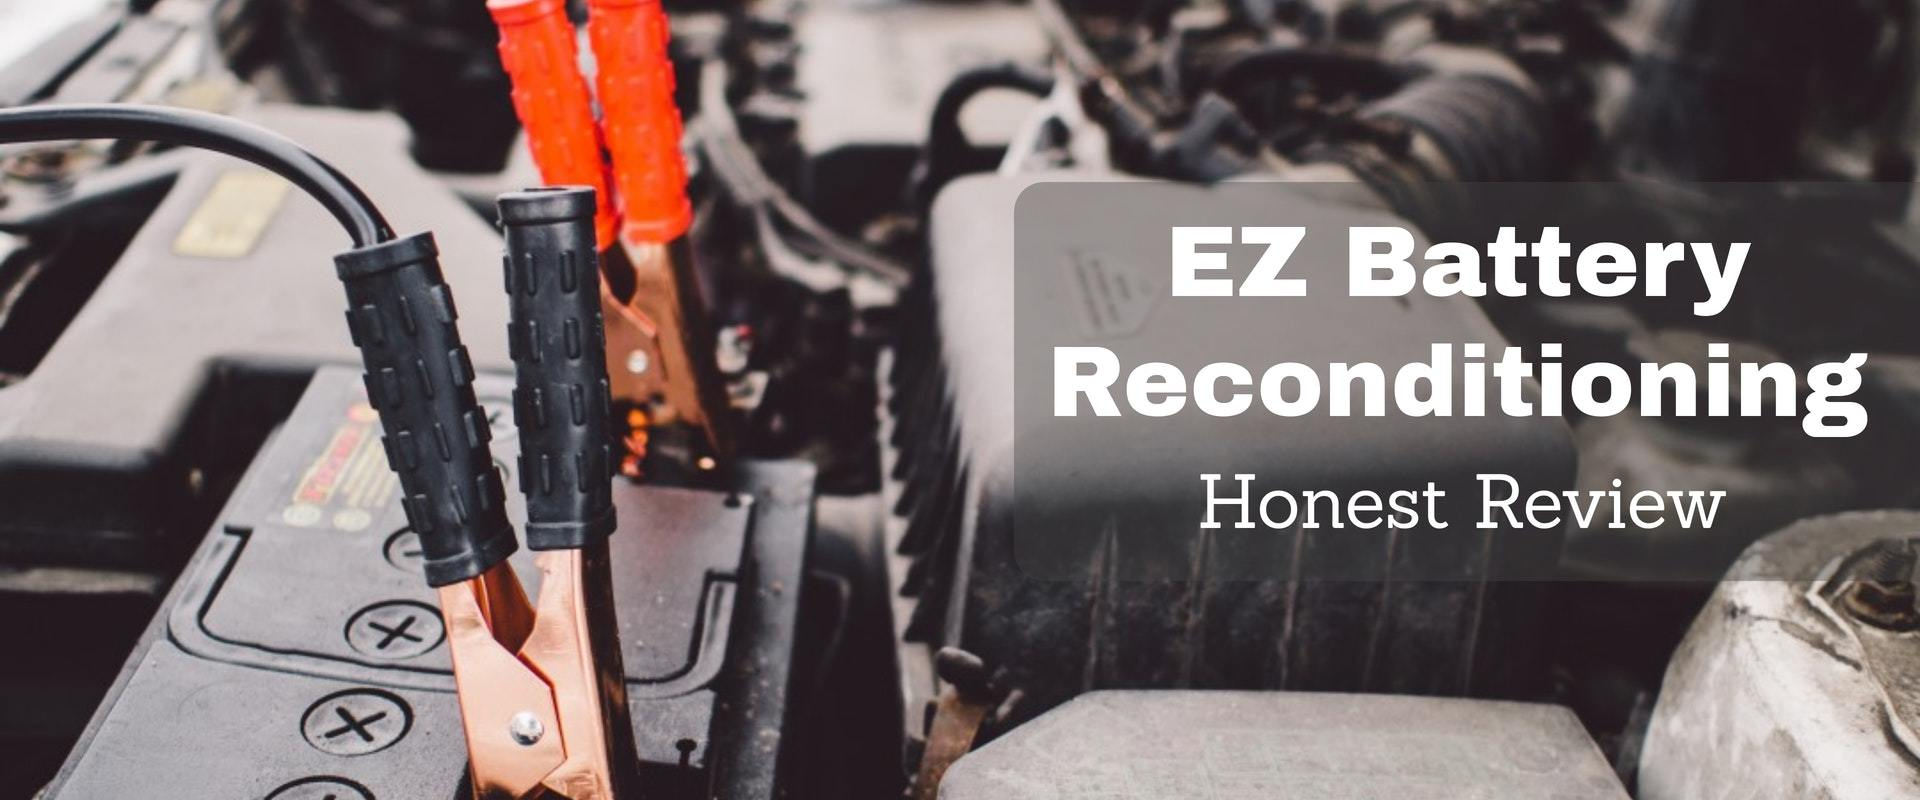 Ez Battery Reconditioning Review – Does It Actually Work?